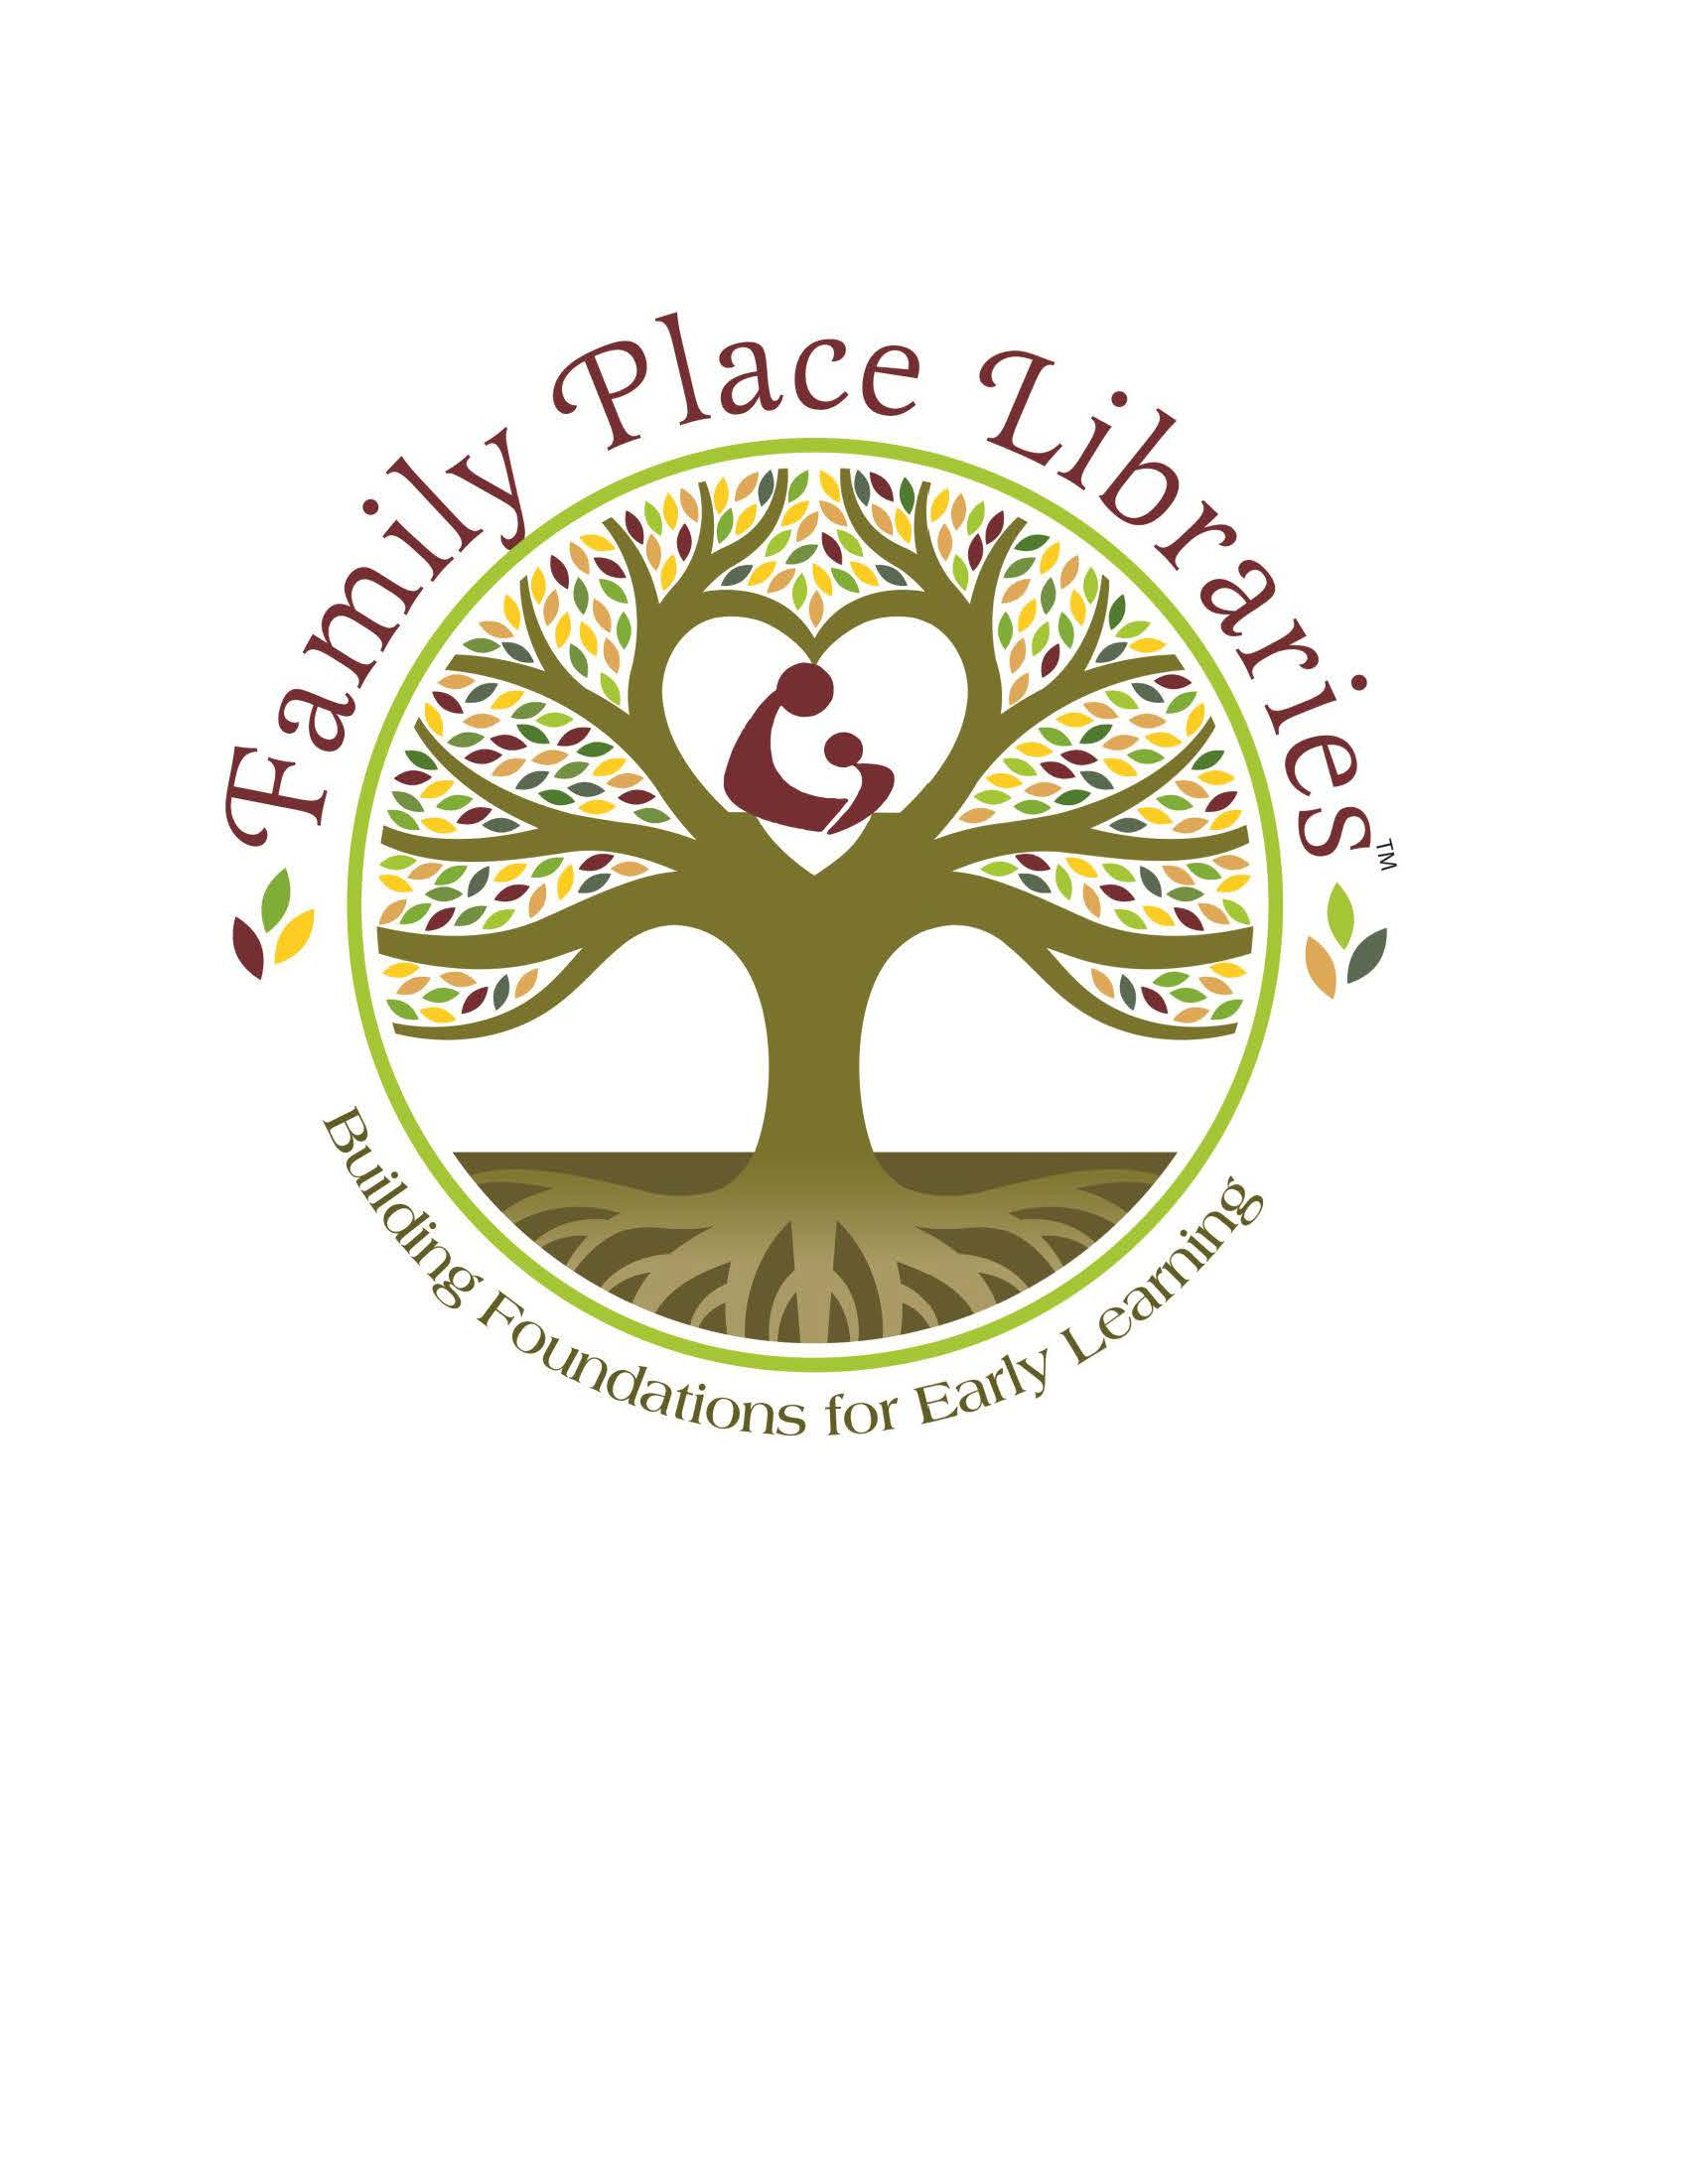 Family Place Libraries: Building Foundations for Early Learning